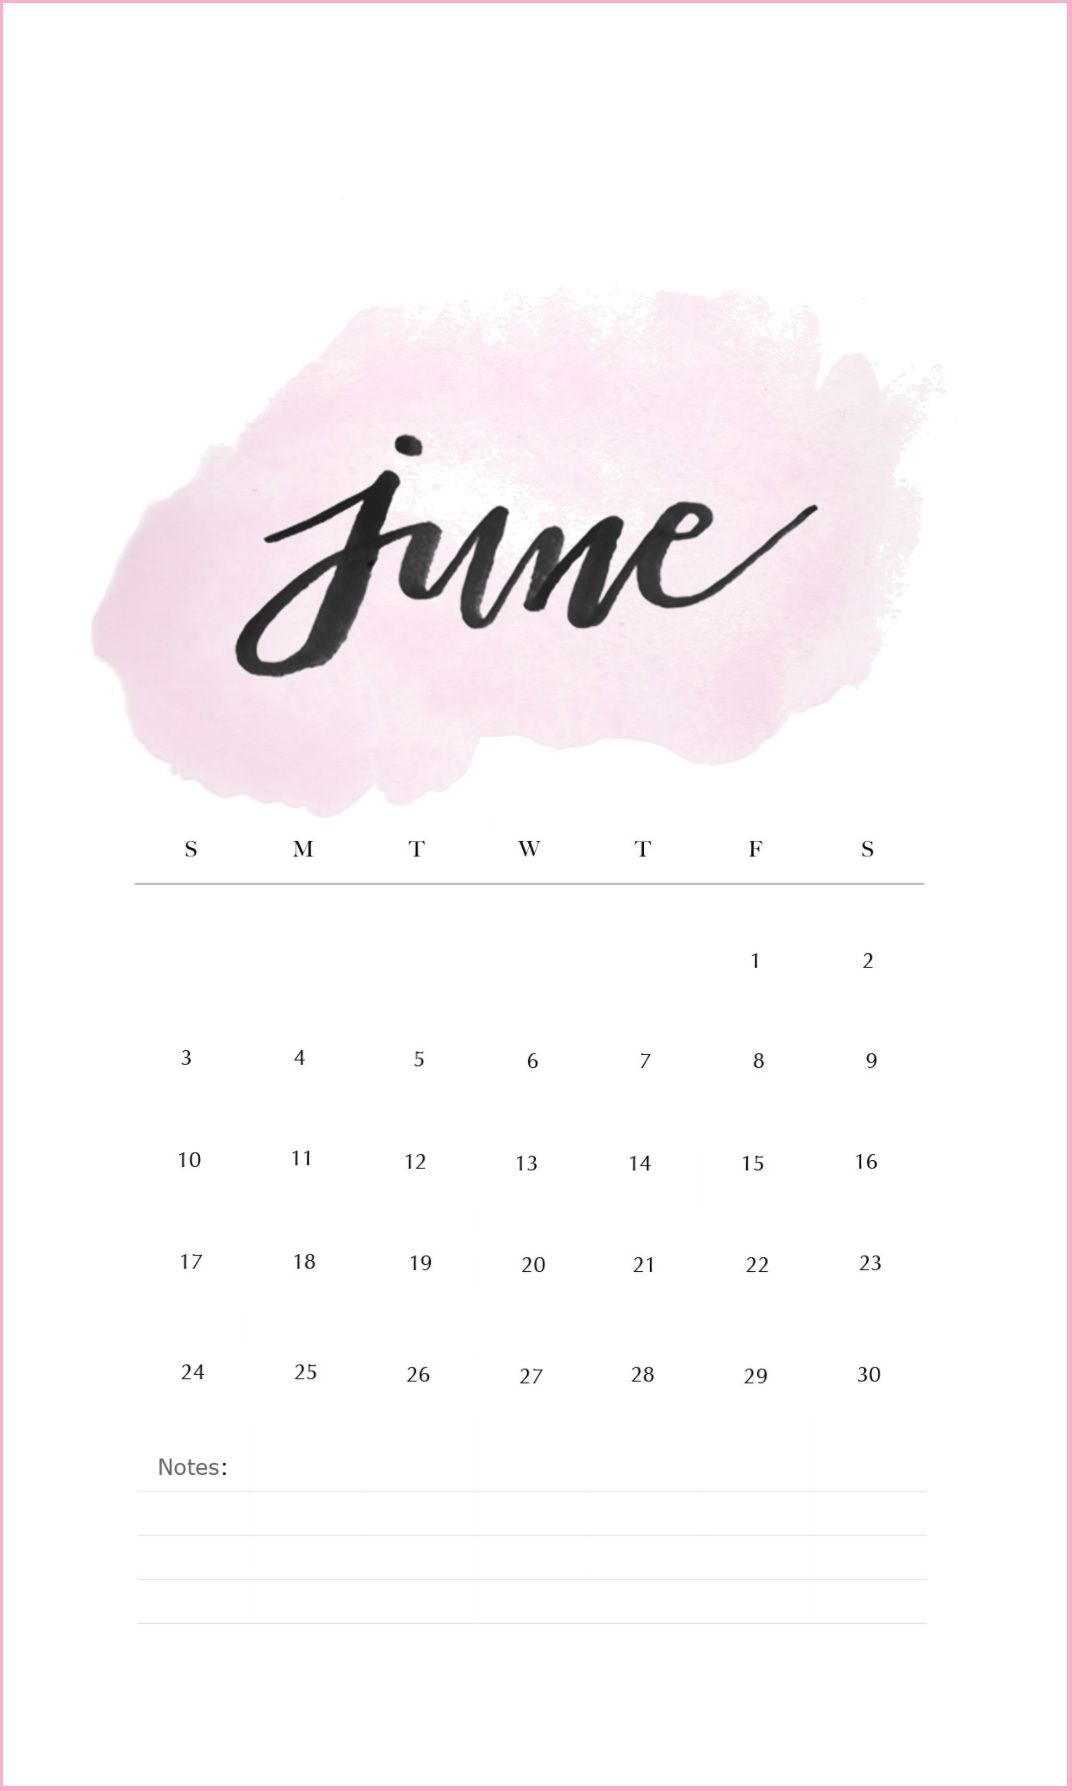 free june 2019 iphone calendar wallpaper ::June 2019 iPhone Calendar Wallpaper